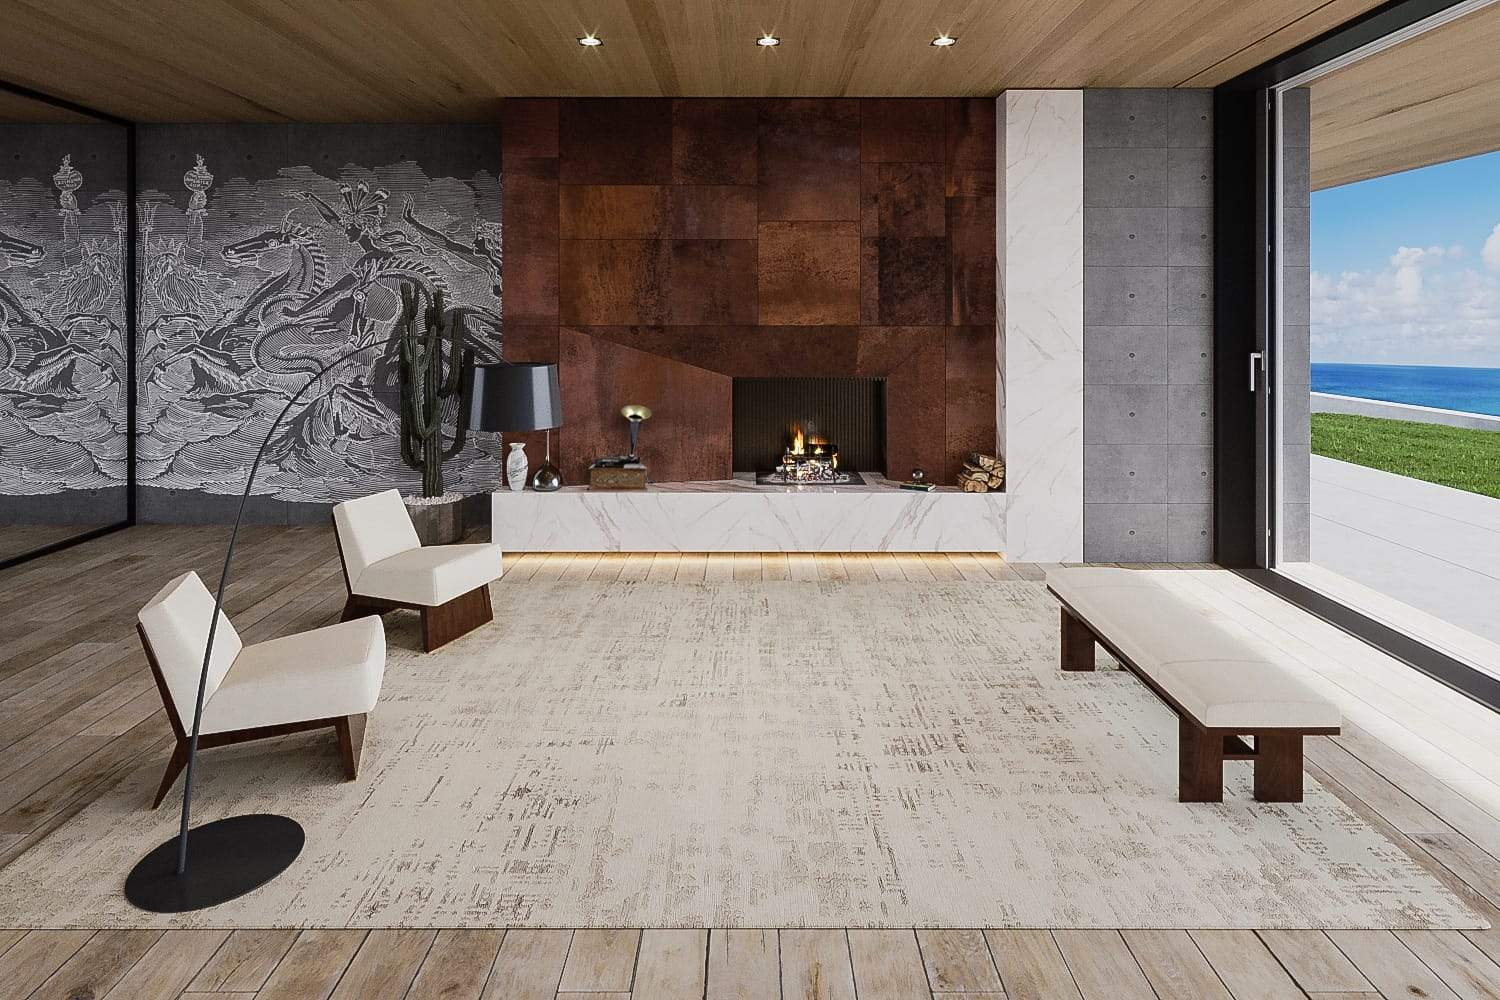 Installation image of Burlap Ivory Gold, a hand knotted rug designed by Barbara Barry for Tufenkian room-image